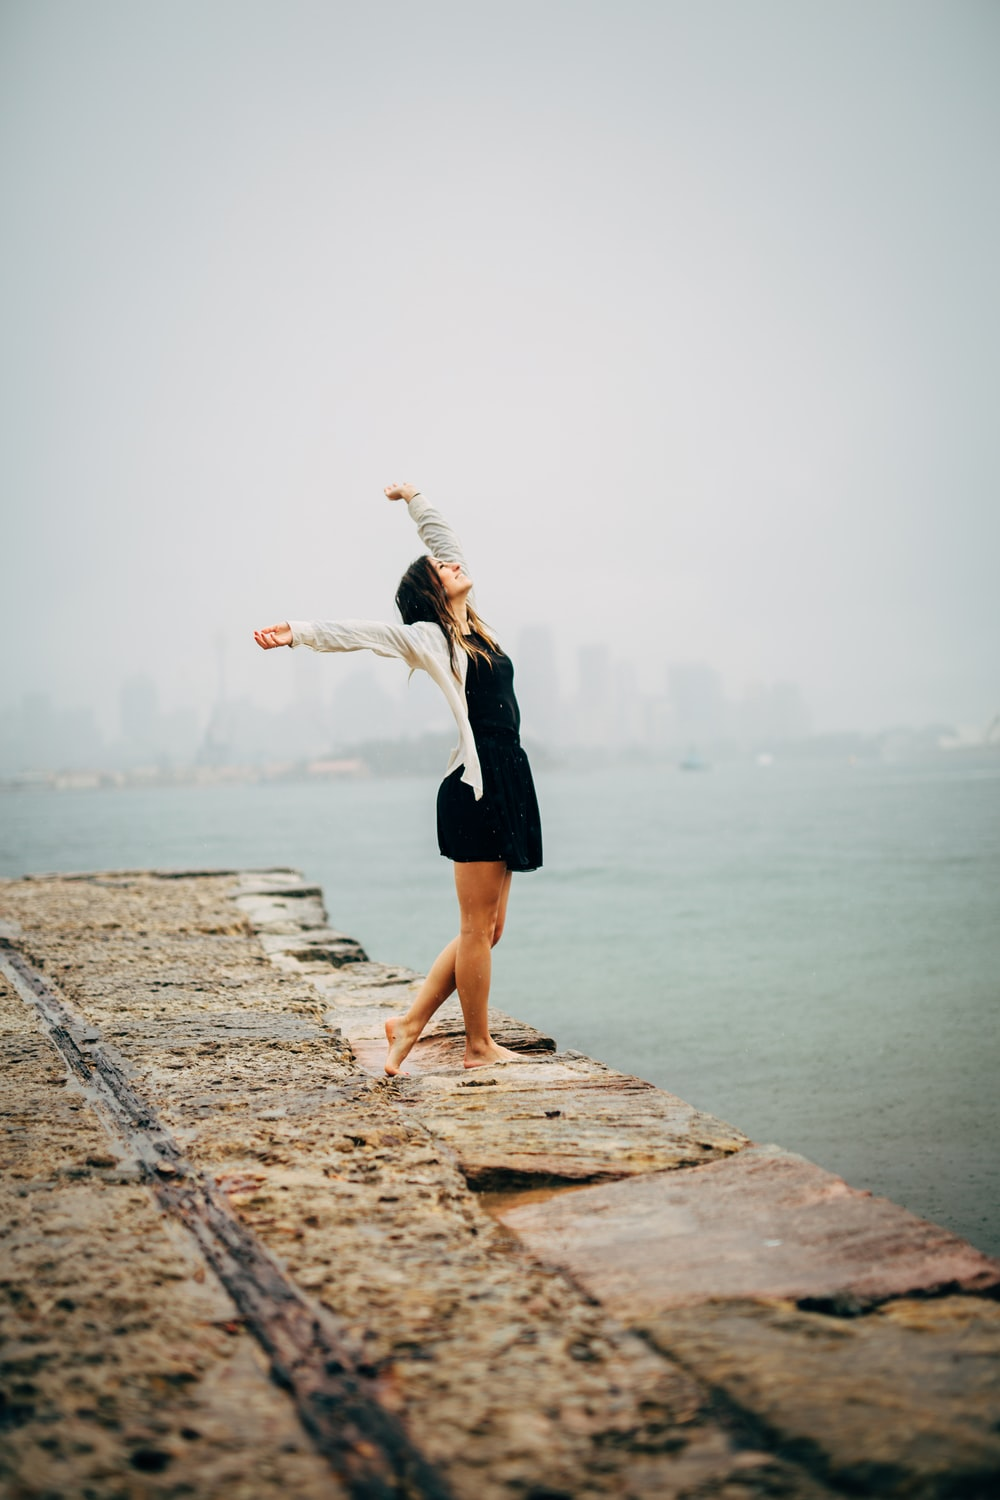 woman in black dress standing on concrete dock during daytime